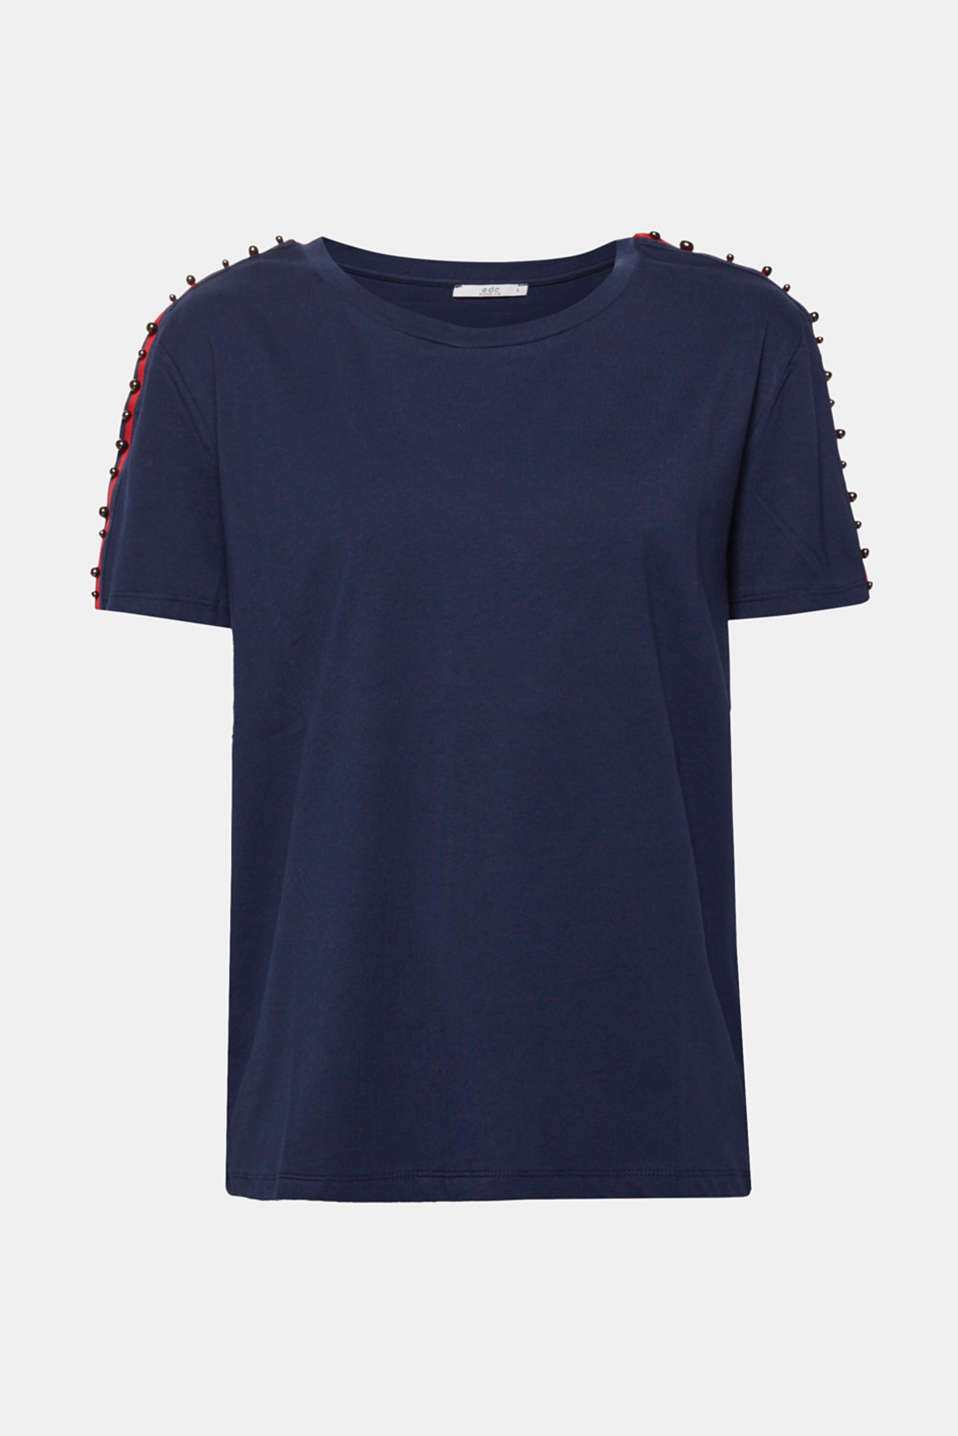 Stunning shoulders: the woven tape decorated with metal beads brings them fashionably into focus and gives this casual cotton tee its cool kick!